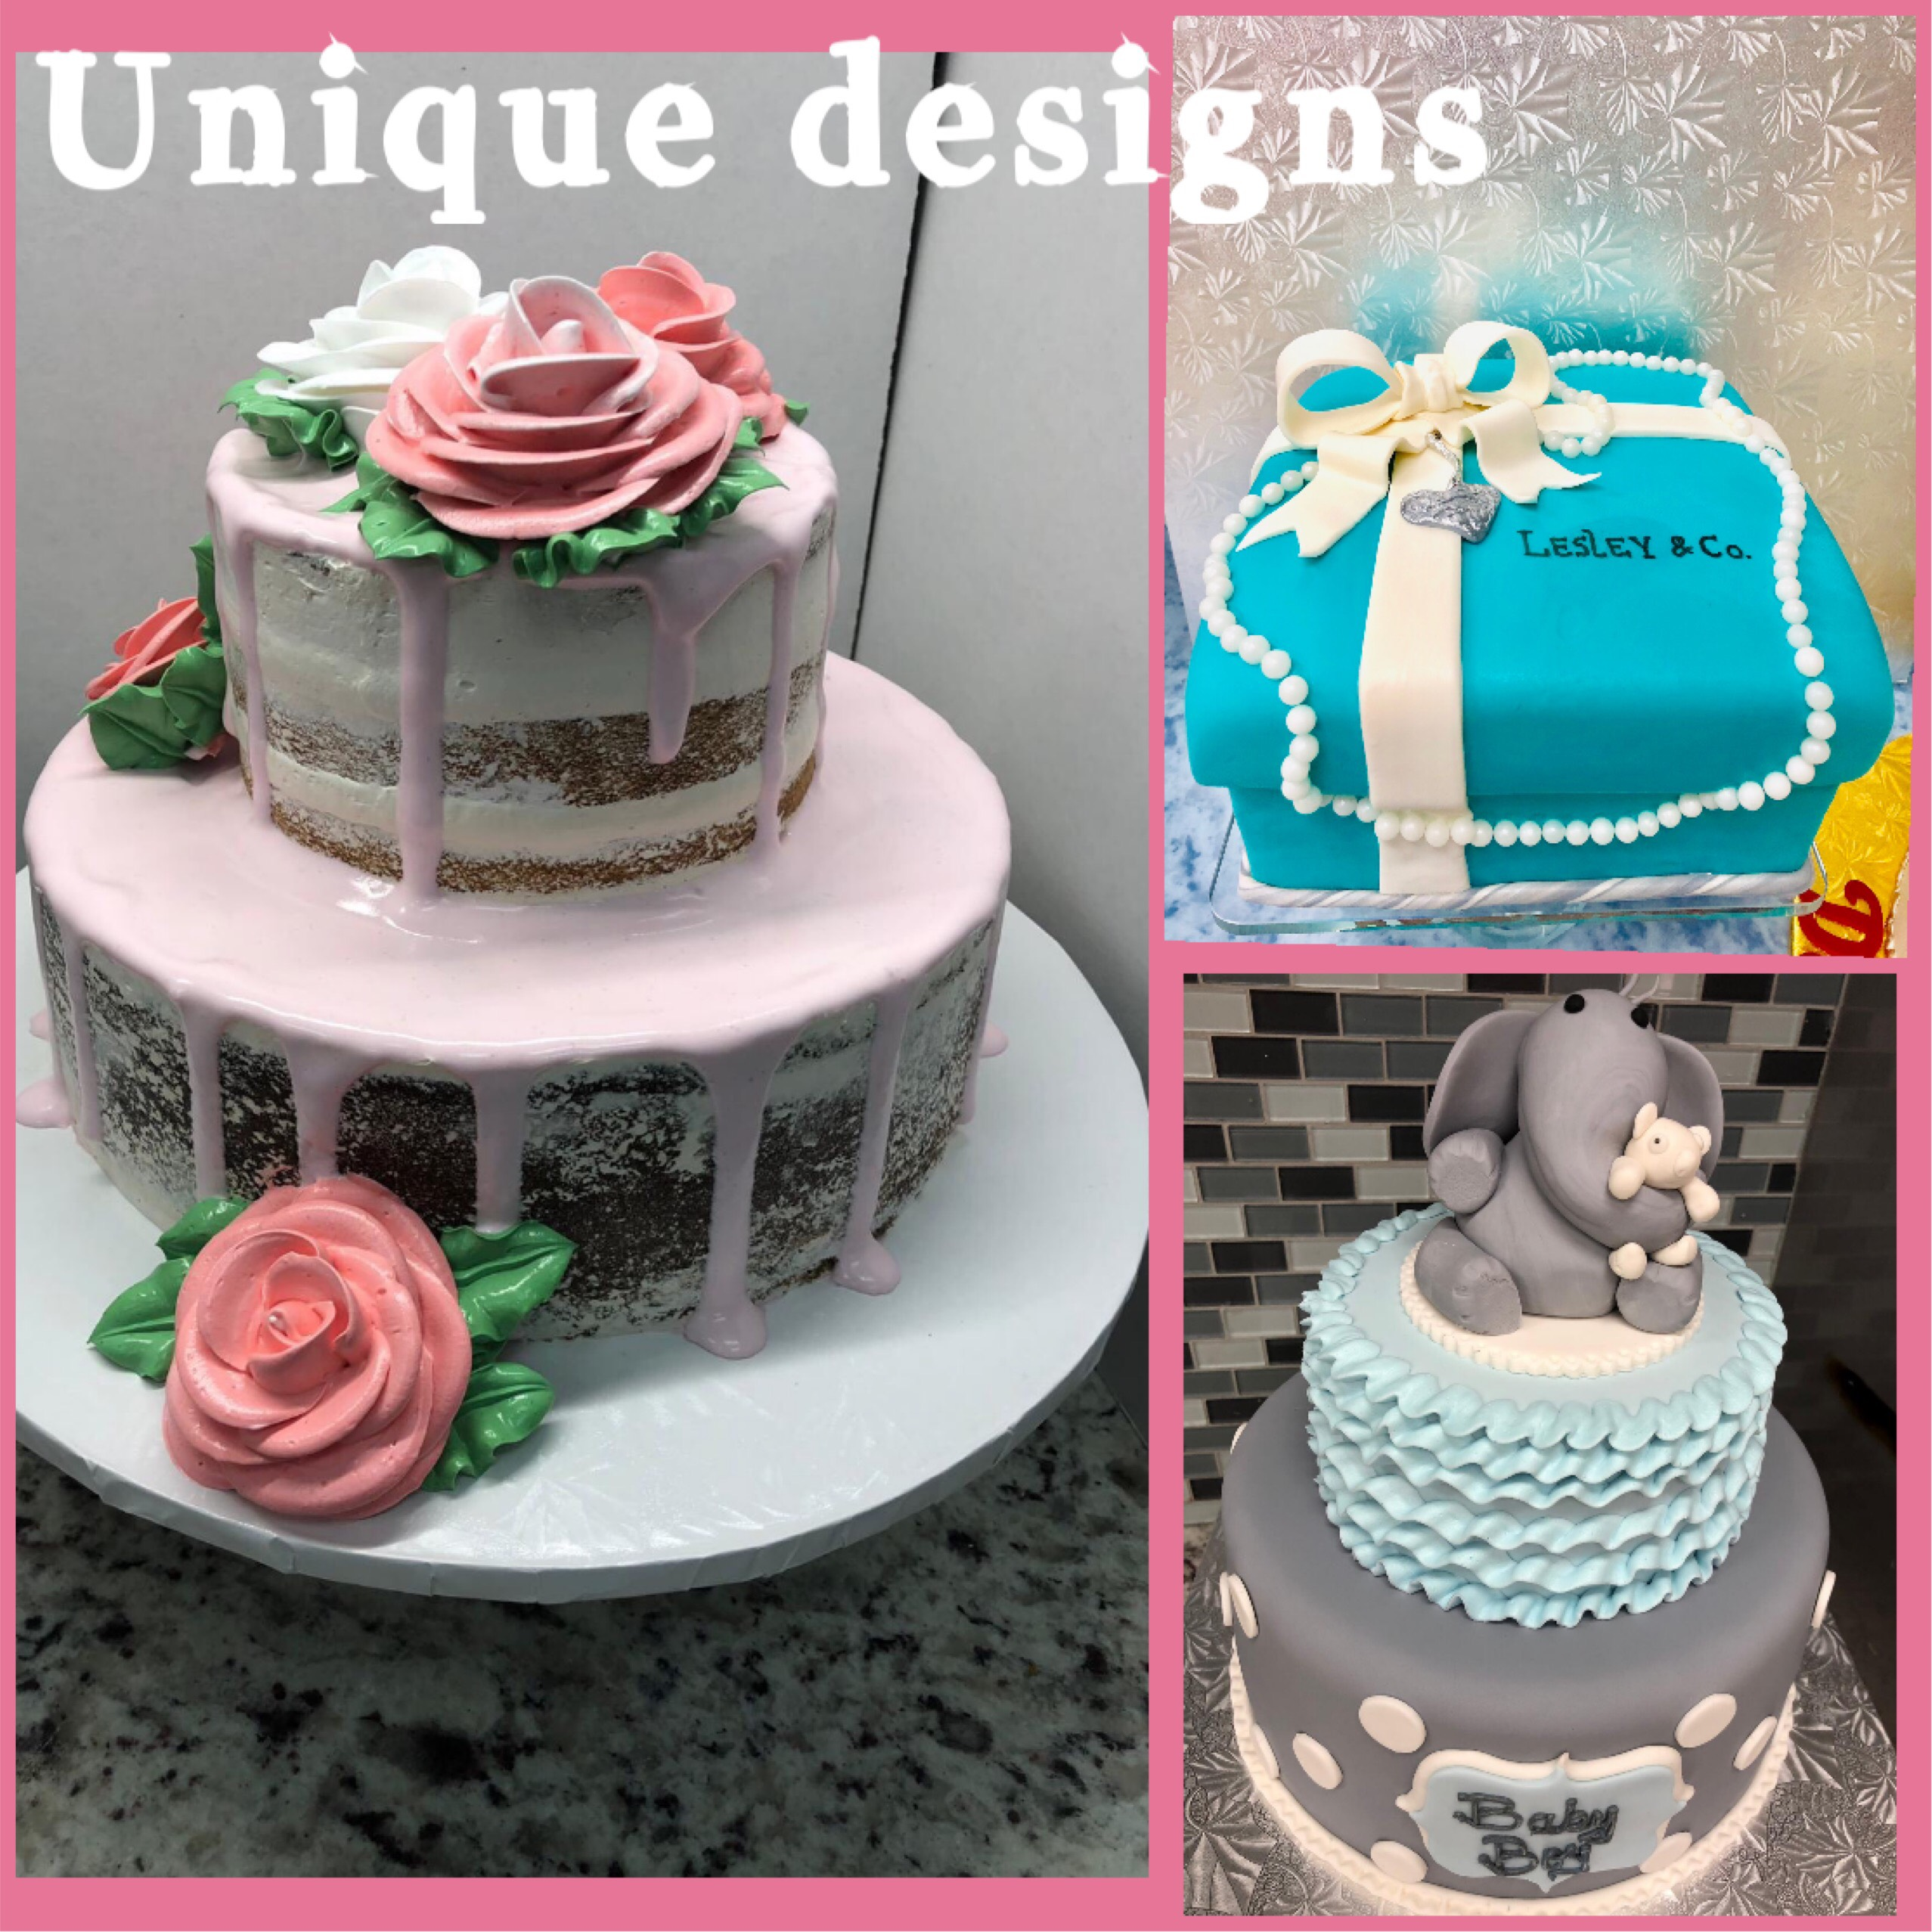 Best Cakes Shop In Miami Ricky Bakery